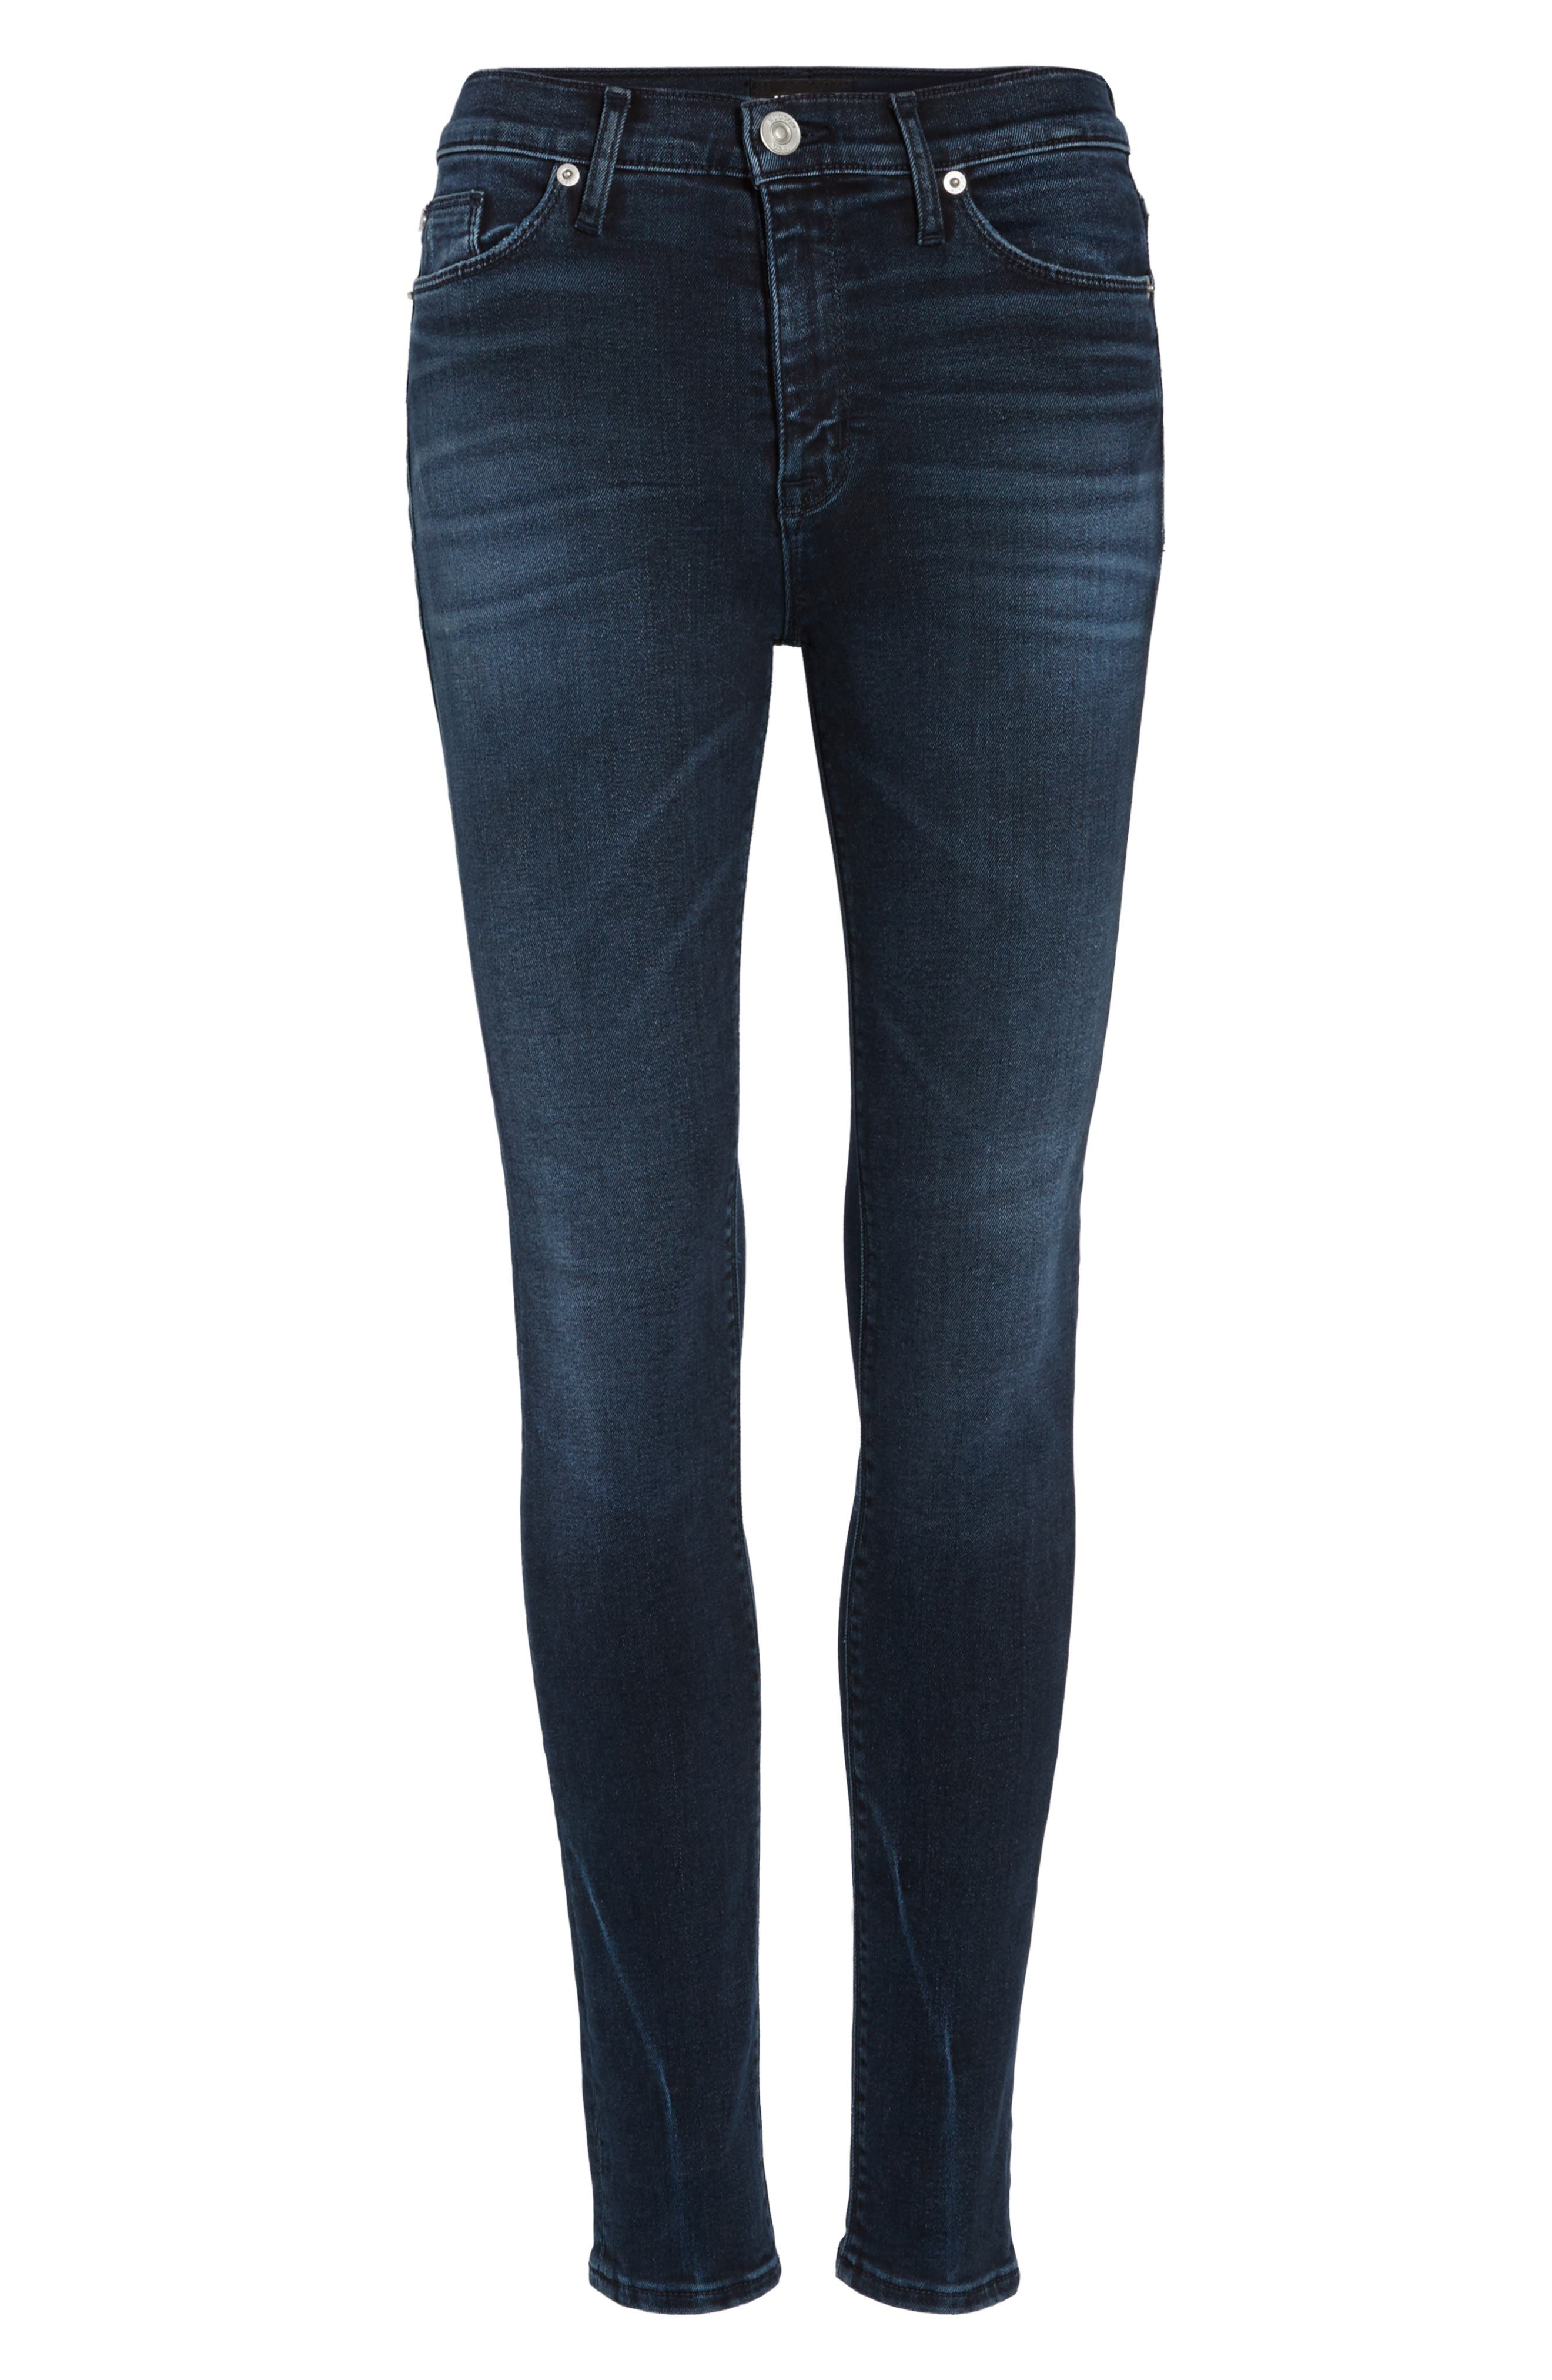 Hudson Barbara High Waist Super Skinny Jeans,                             Alternate thumbnail 6, color,                             Night Ryder